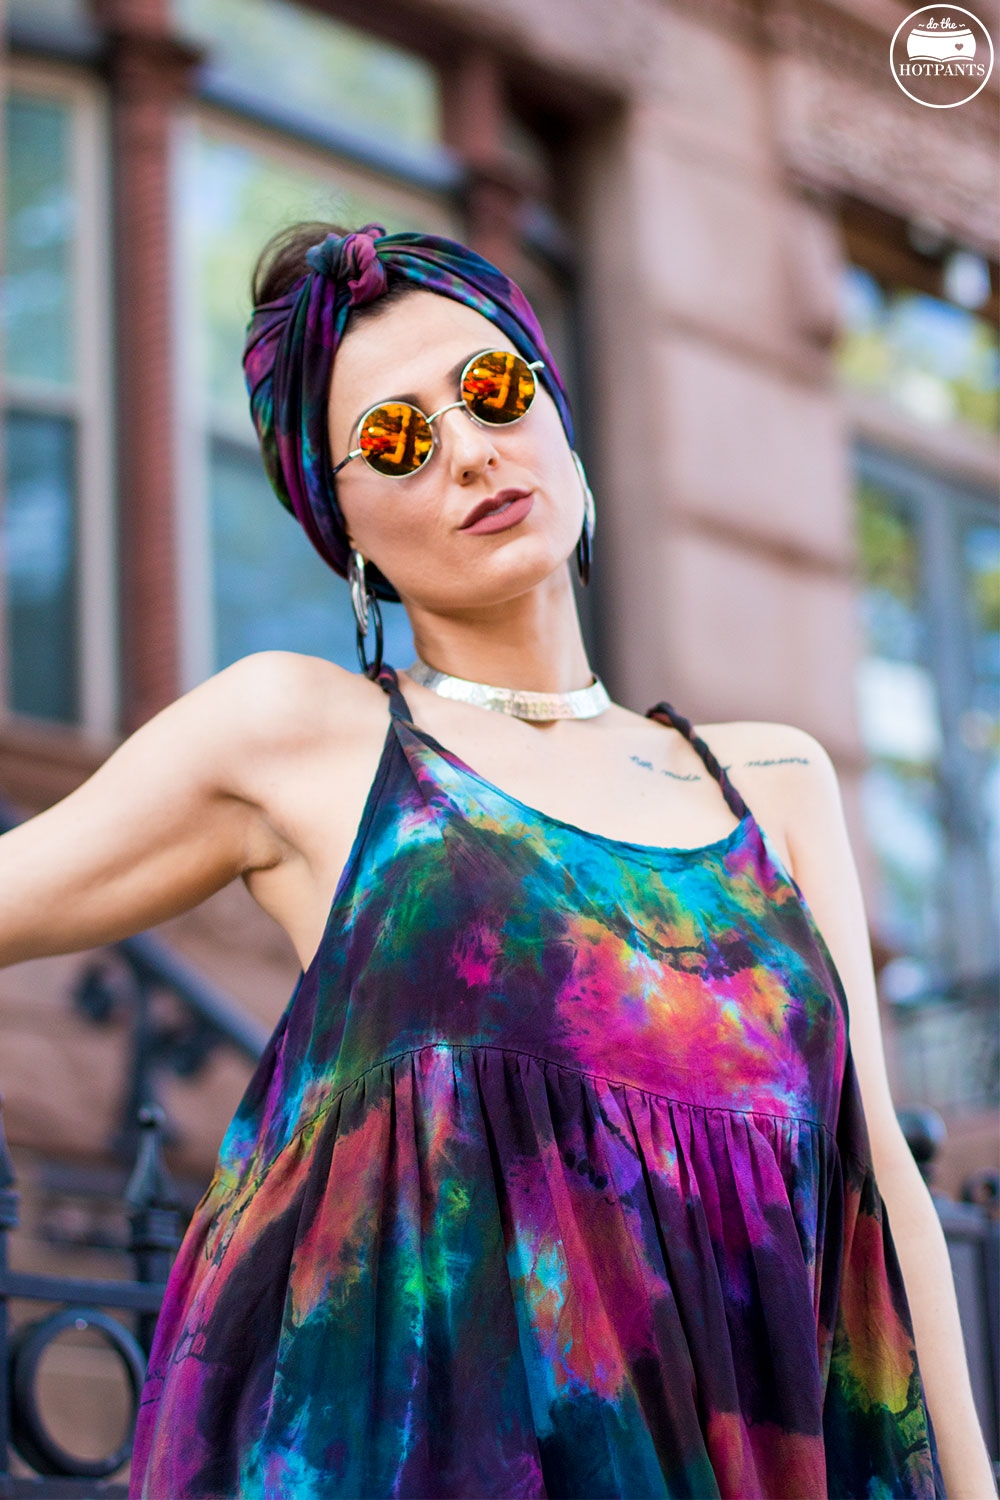 Do The Hotpants Dana Suchow Tie Dye Dress Maxi Flowy Summer Dress Tiedye Headwrap Turban Fashion IMG_0070